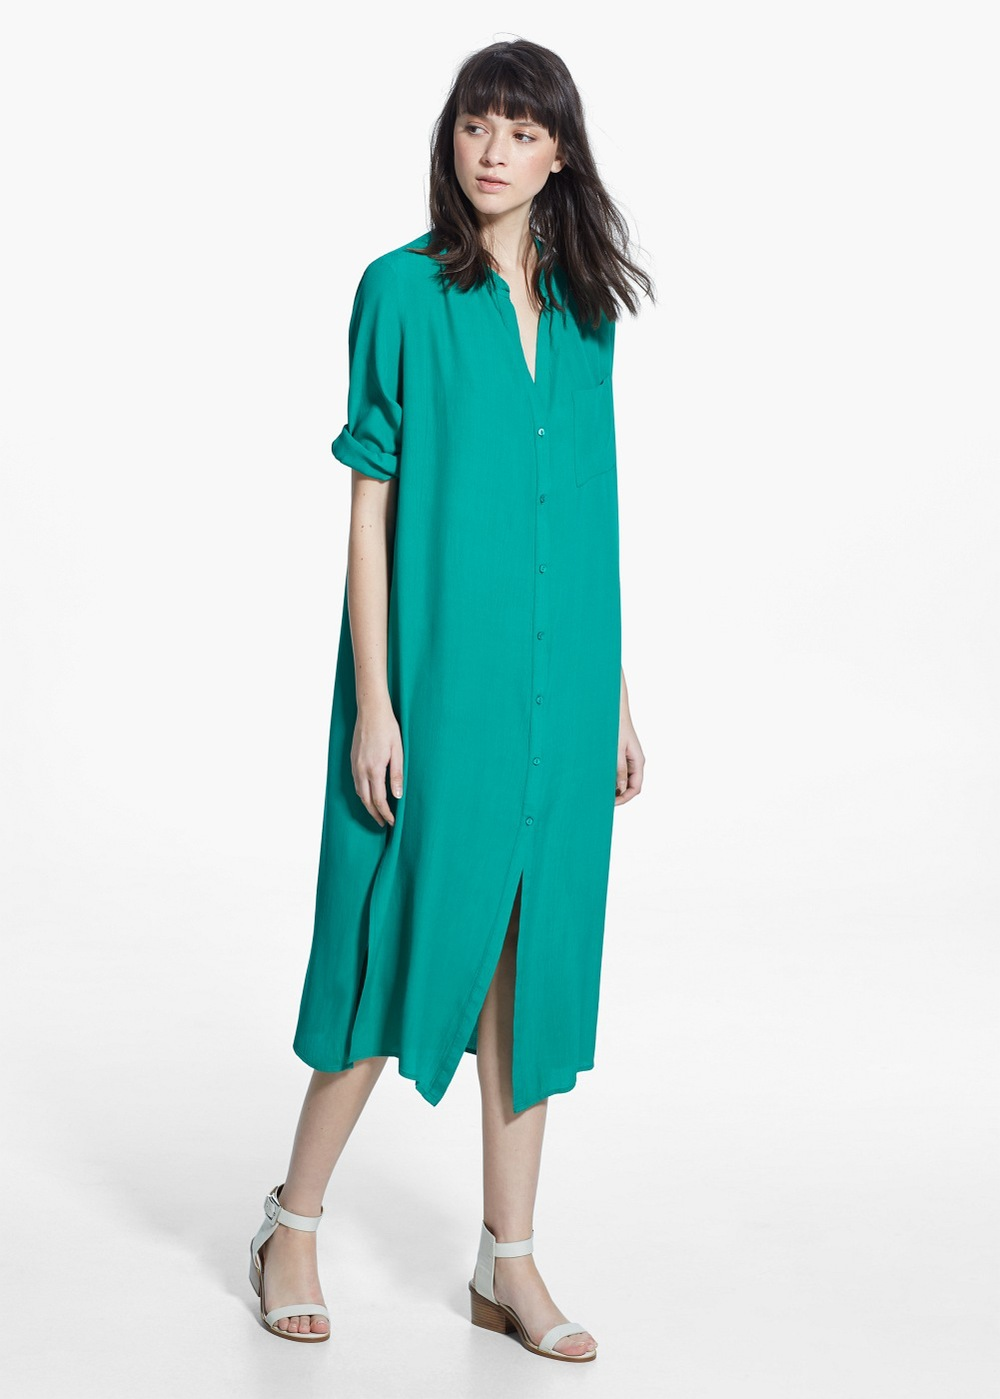 Pocket Shirt Dress , $79.99